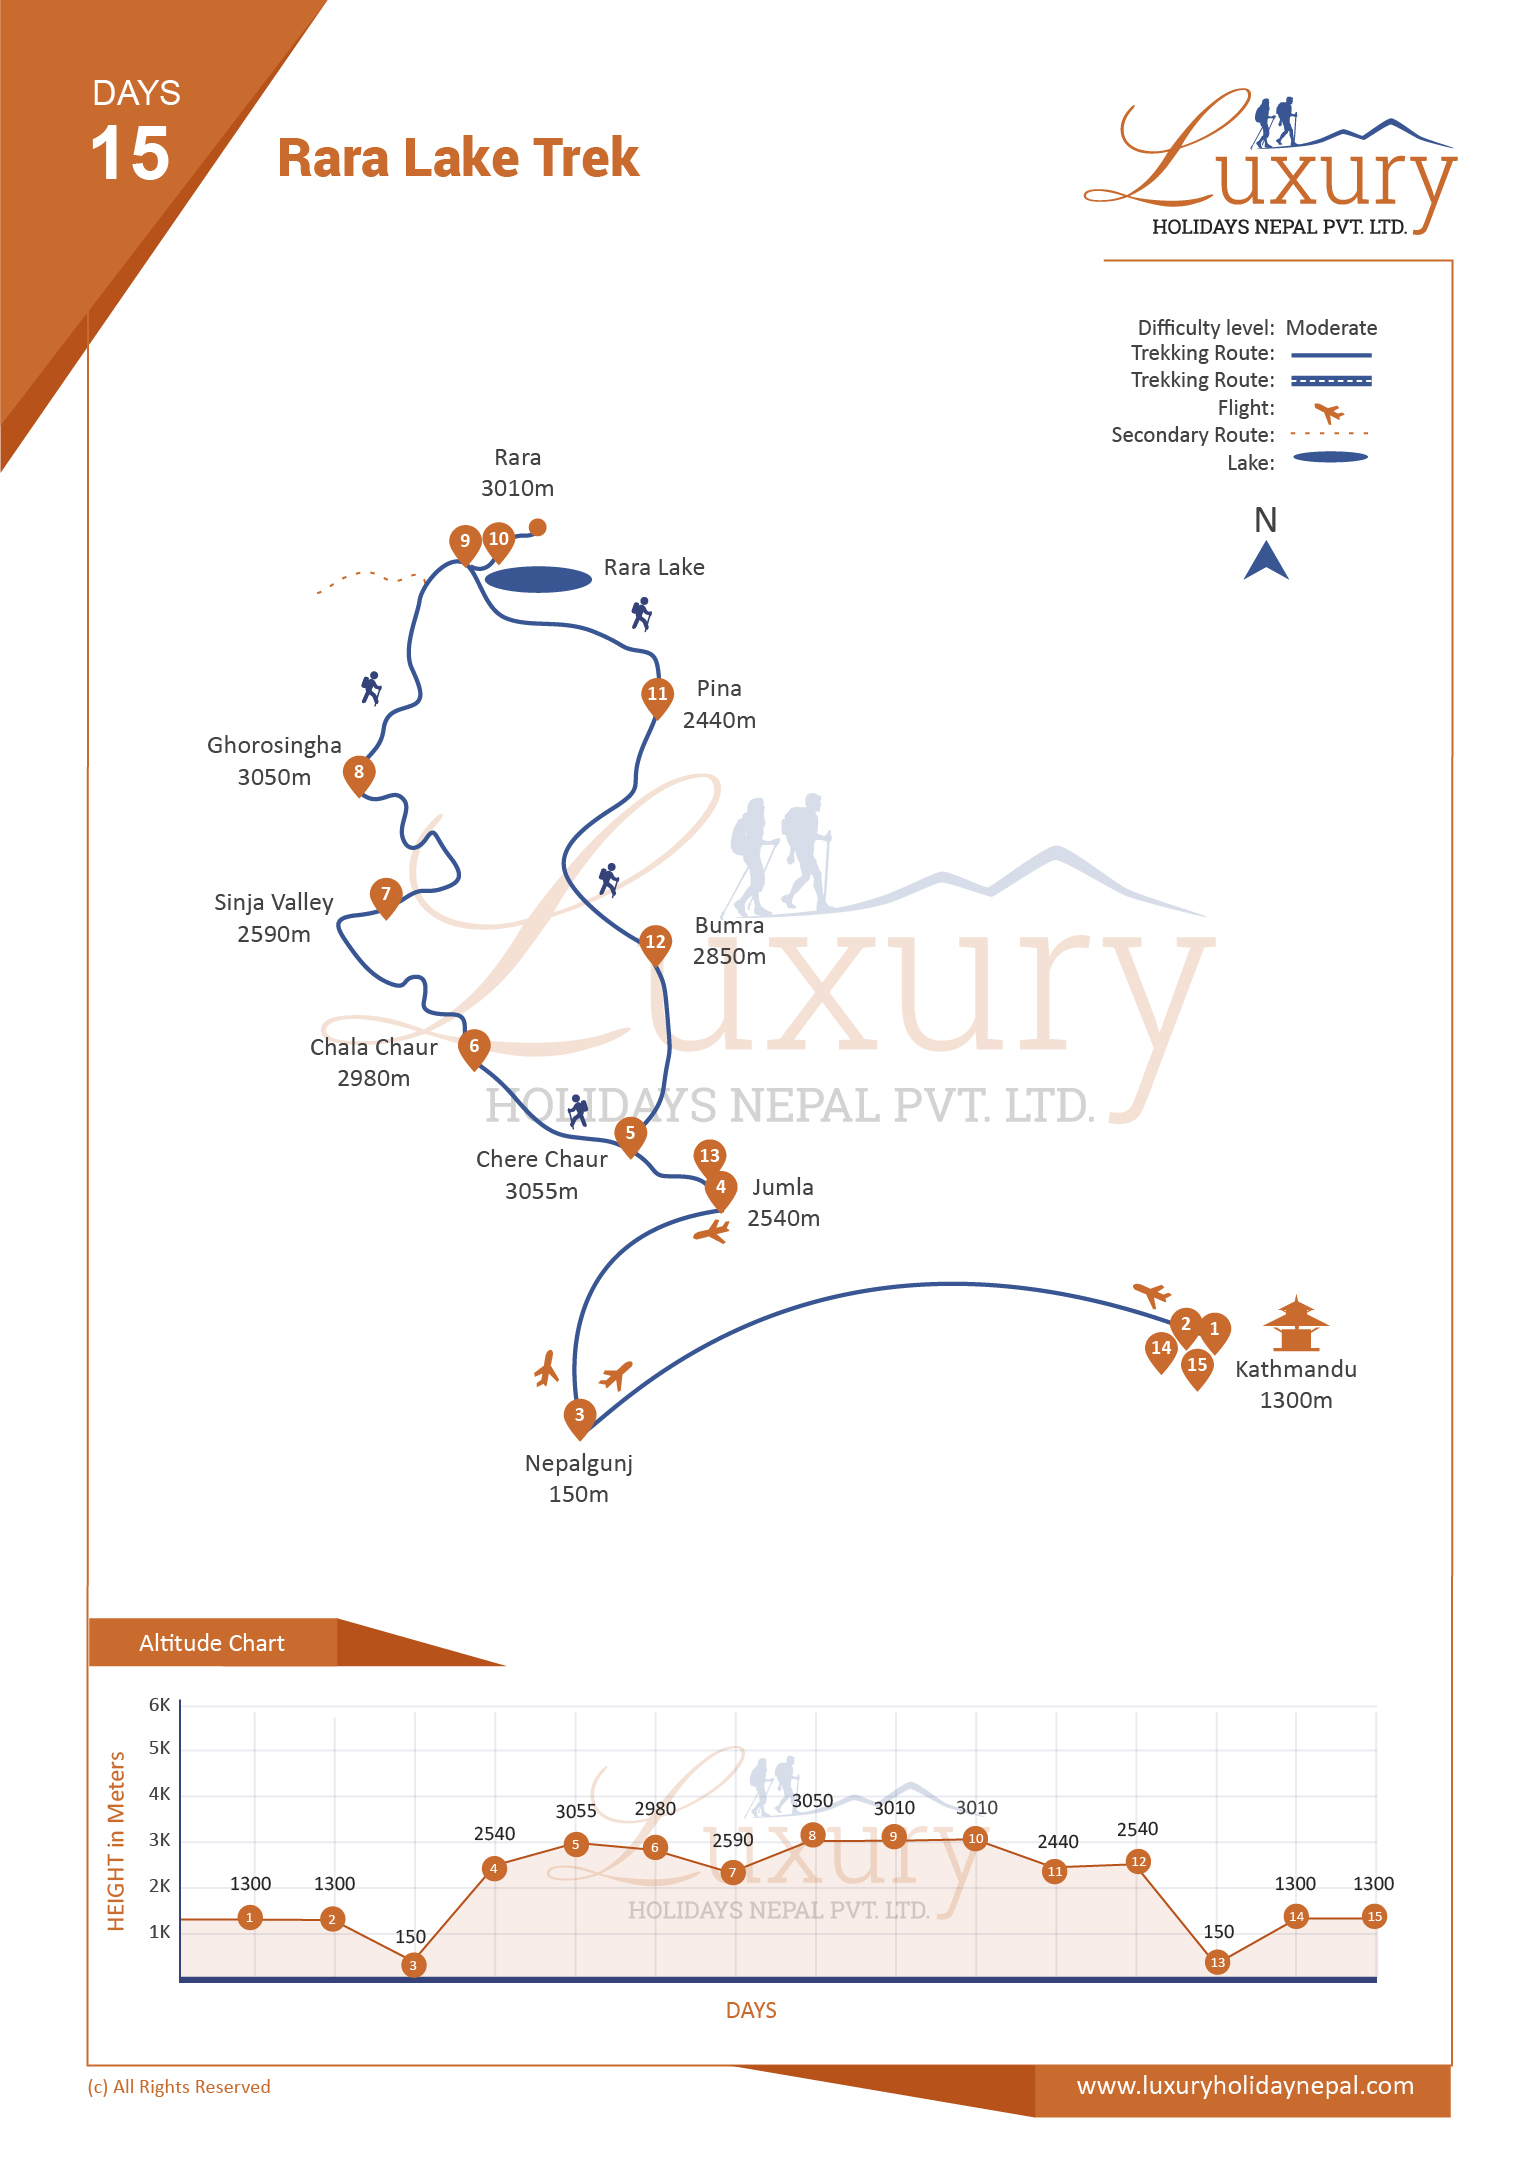 Rara Lake Trek Trip Map